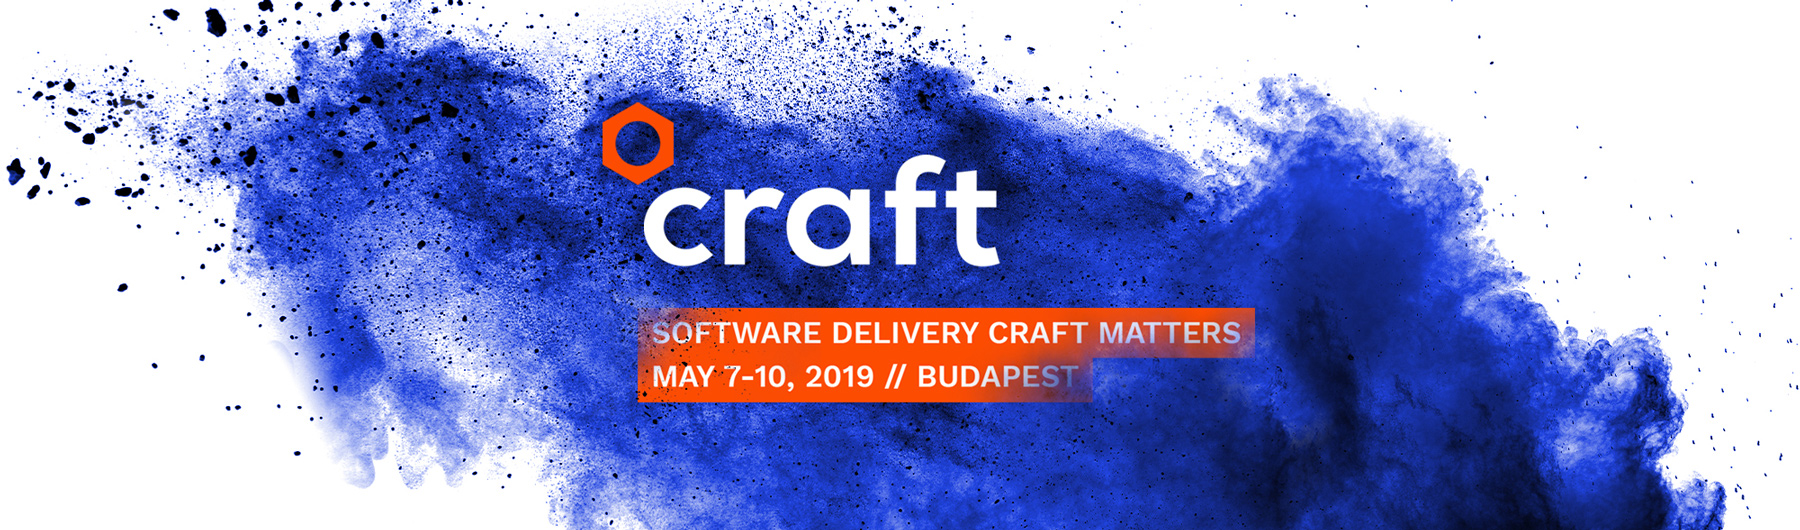 Craft Conference 2019